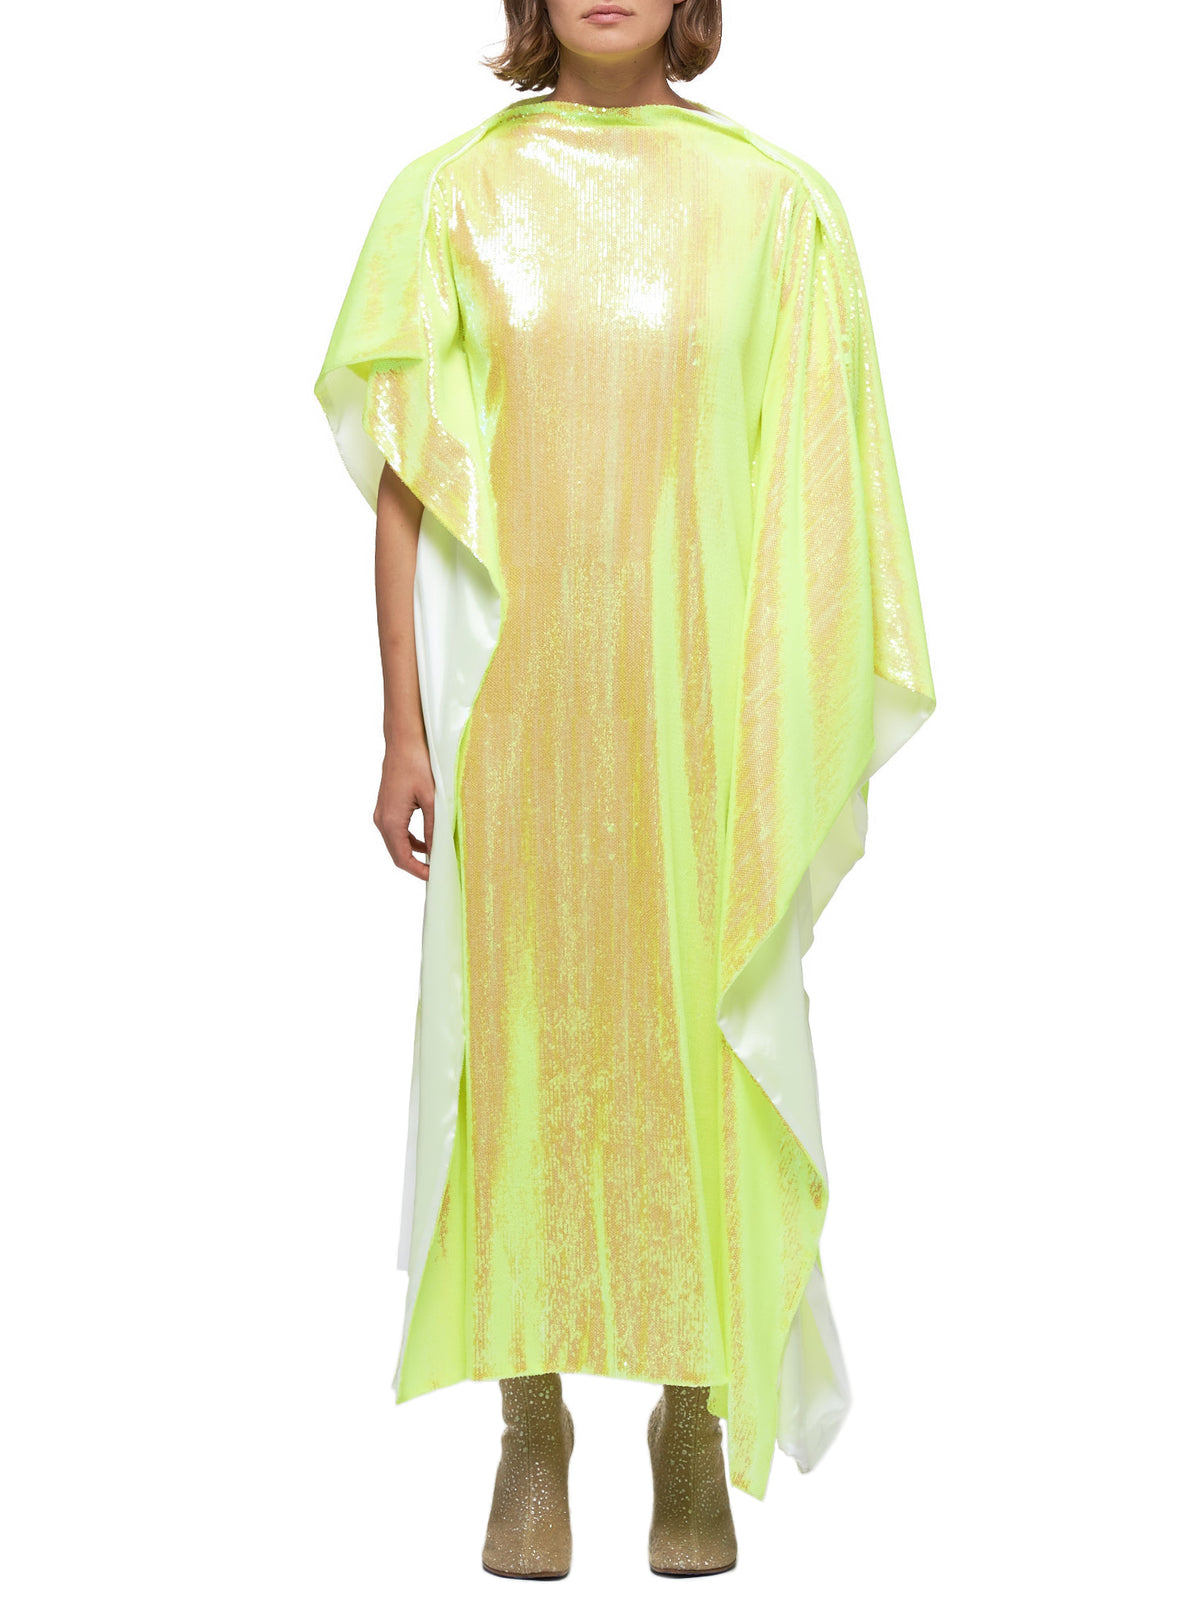 Sequined Oversized Dress (S52CT0506-S52529-172-YELLOW)